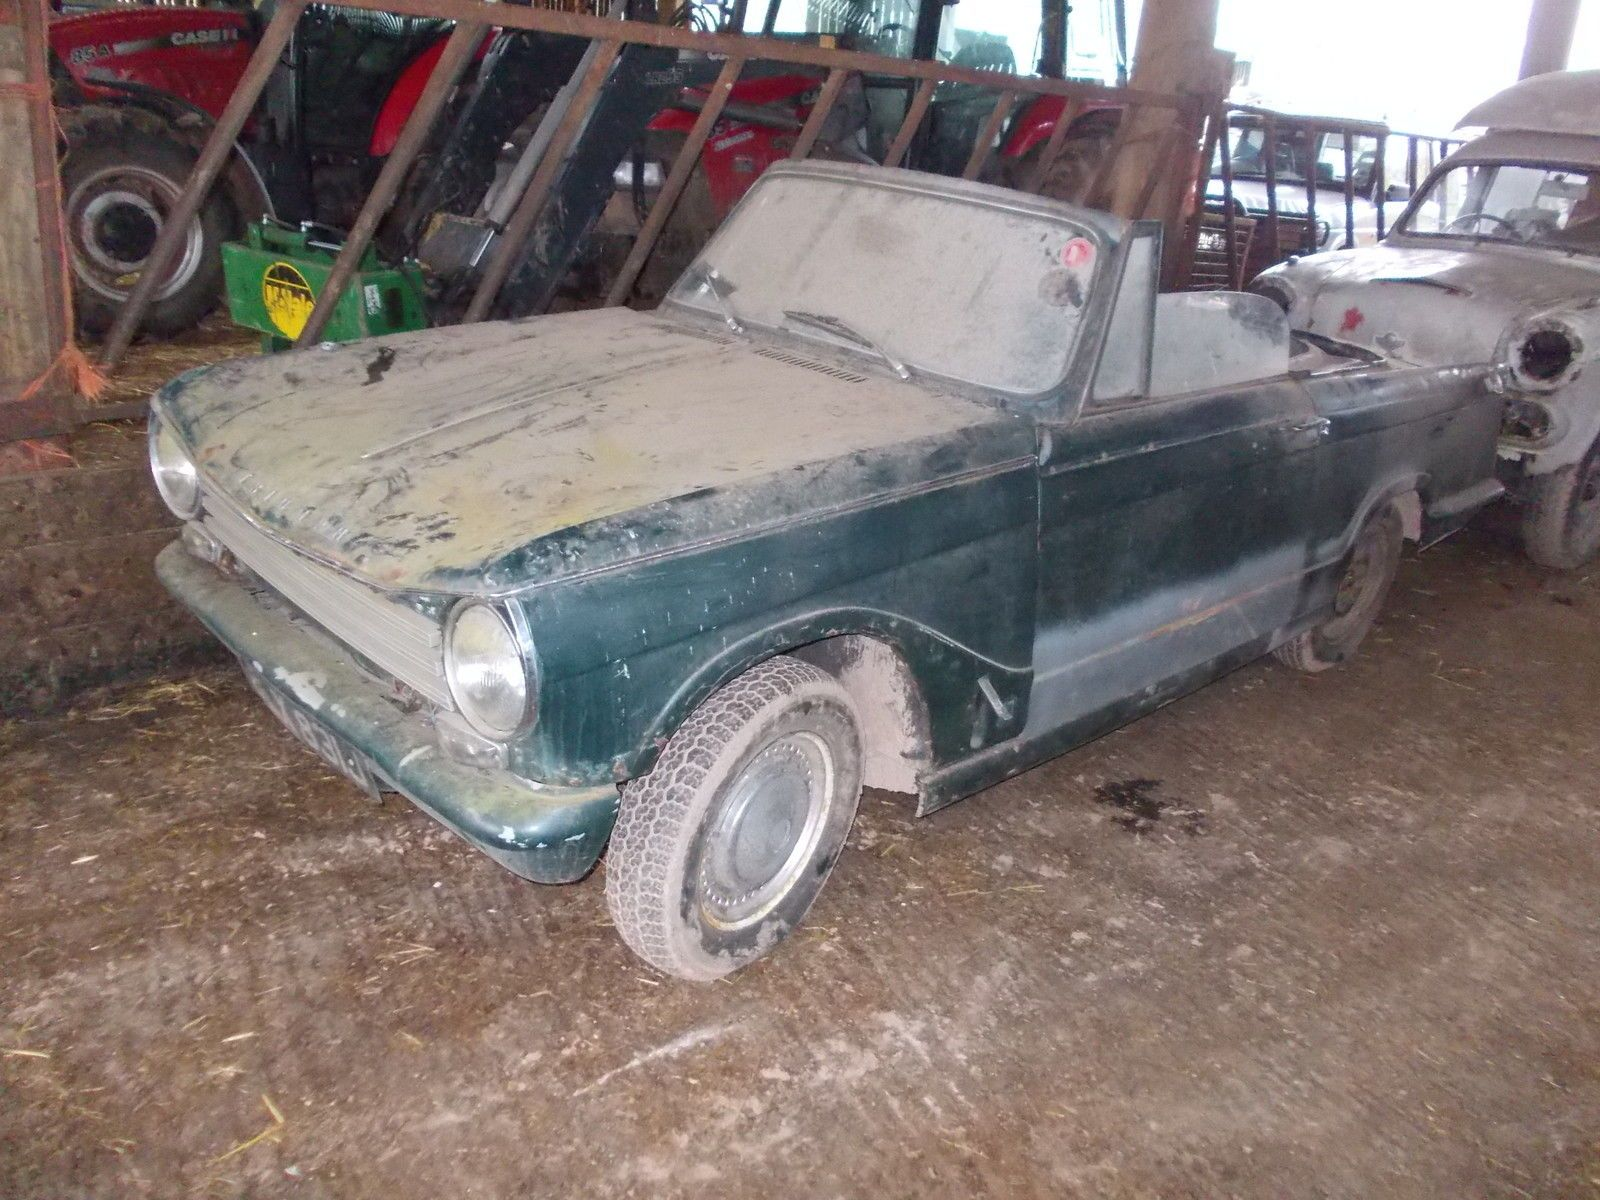 1971 (J) TRIUMPH HERALD 13/60 CONVERTIBLE FOR RESTORATION WITH TWIN CARBS ! | eBay